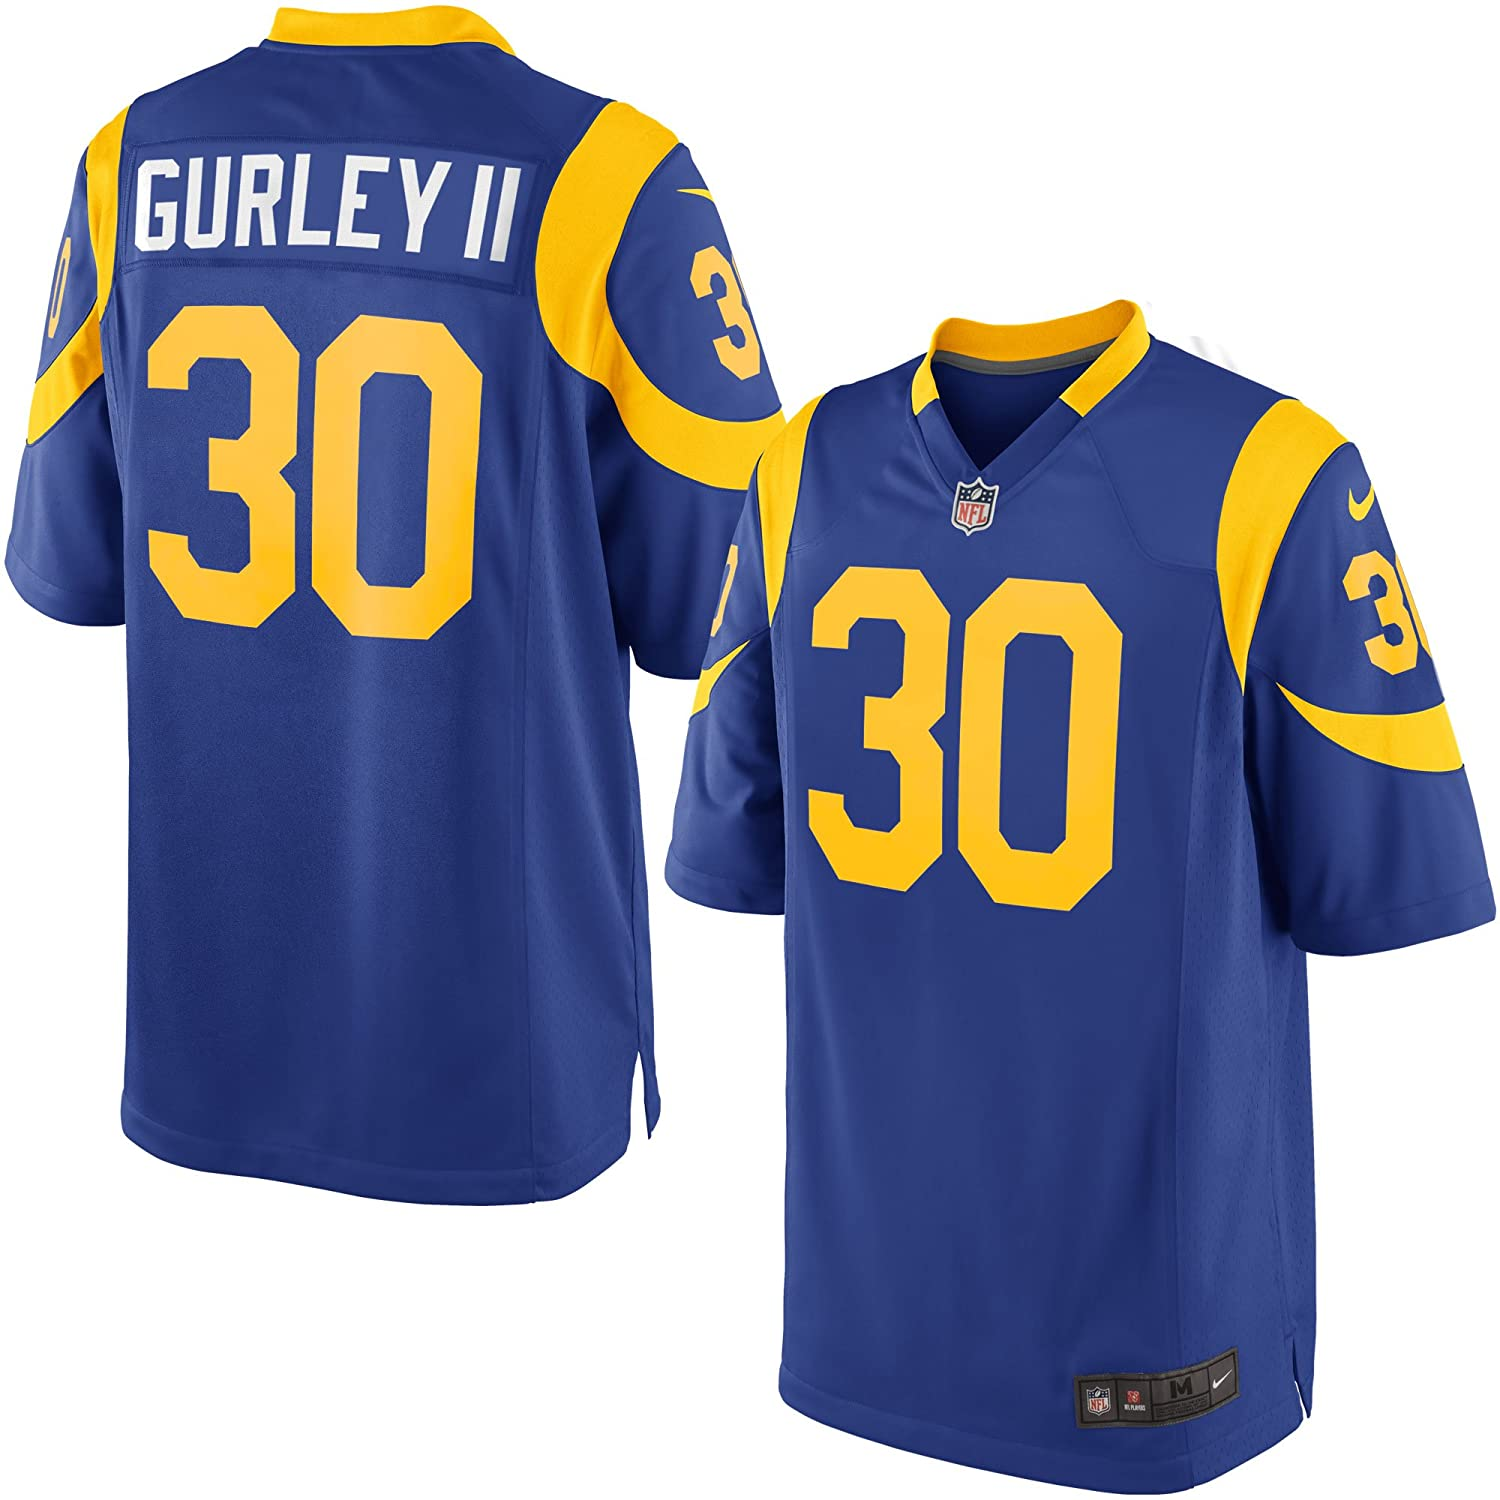 a98ca7ea3ee Amazon.com: NIKE Todd Gurley II Los Angeles Rams Throwback Alternate Royal  Blue Game Jersey - Men's 2XL (XXL): Clothing